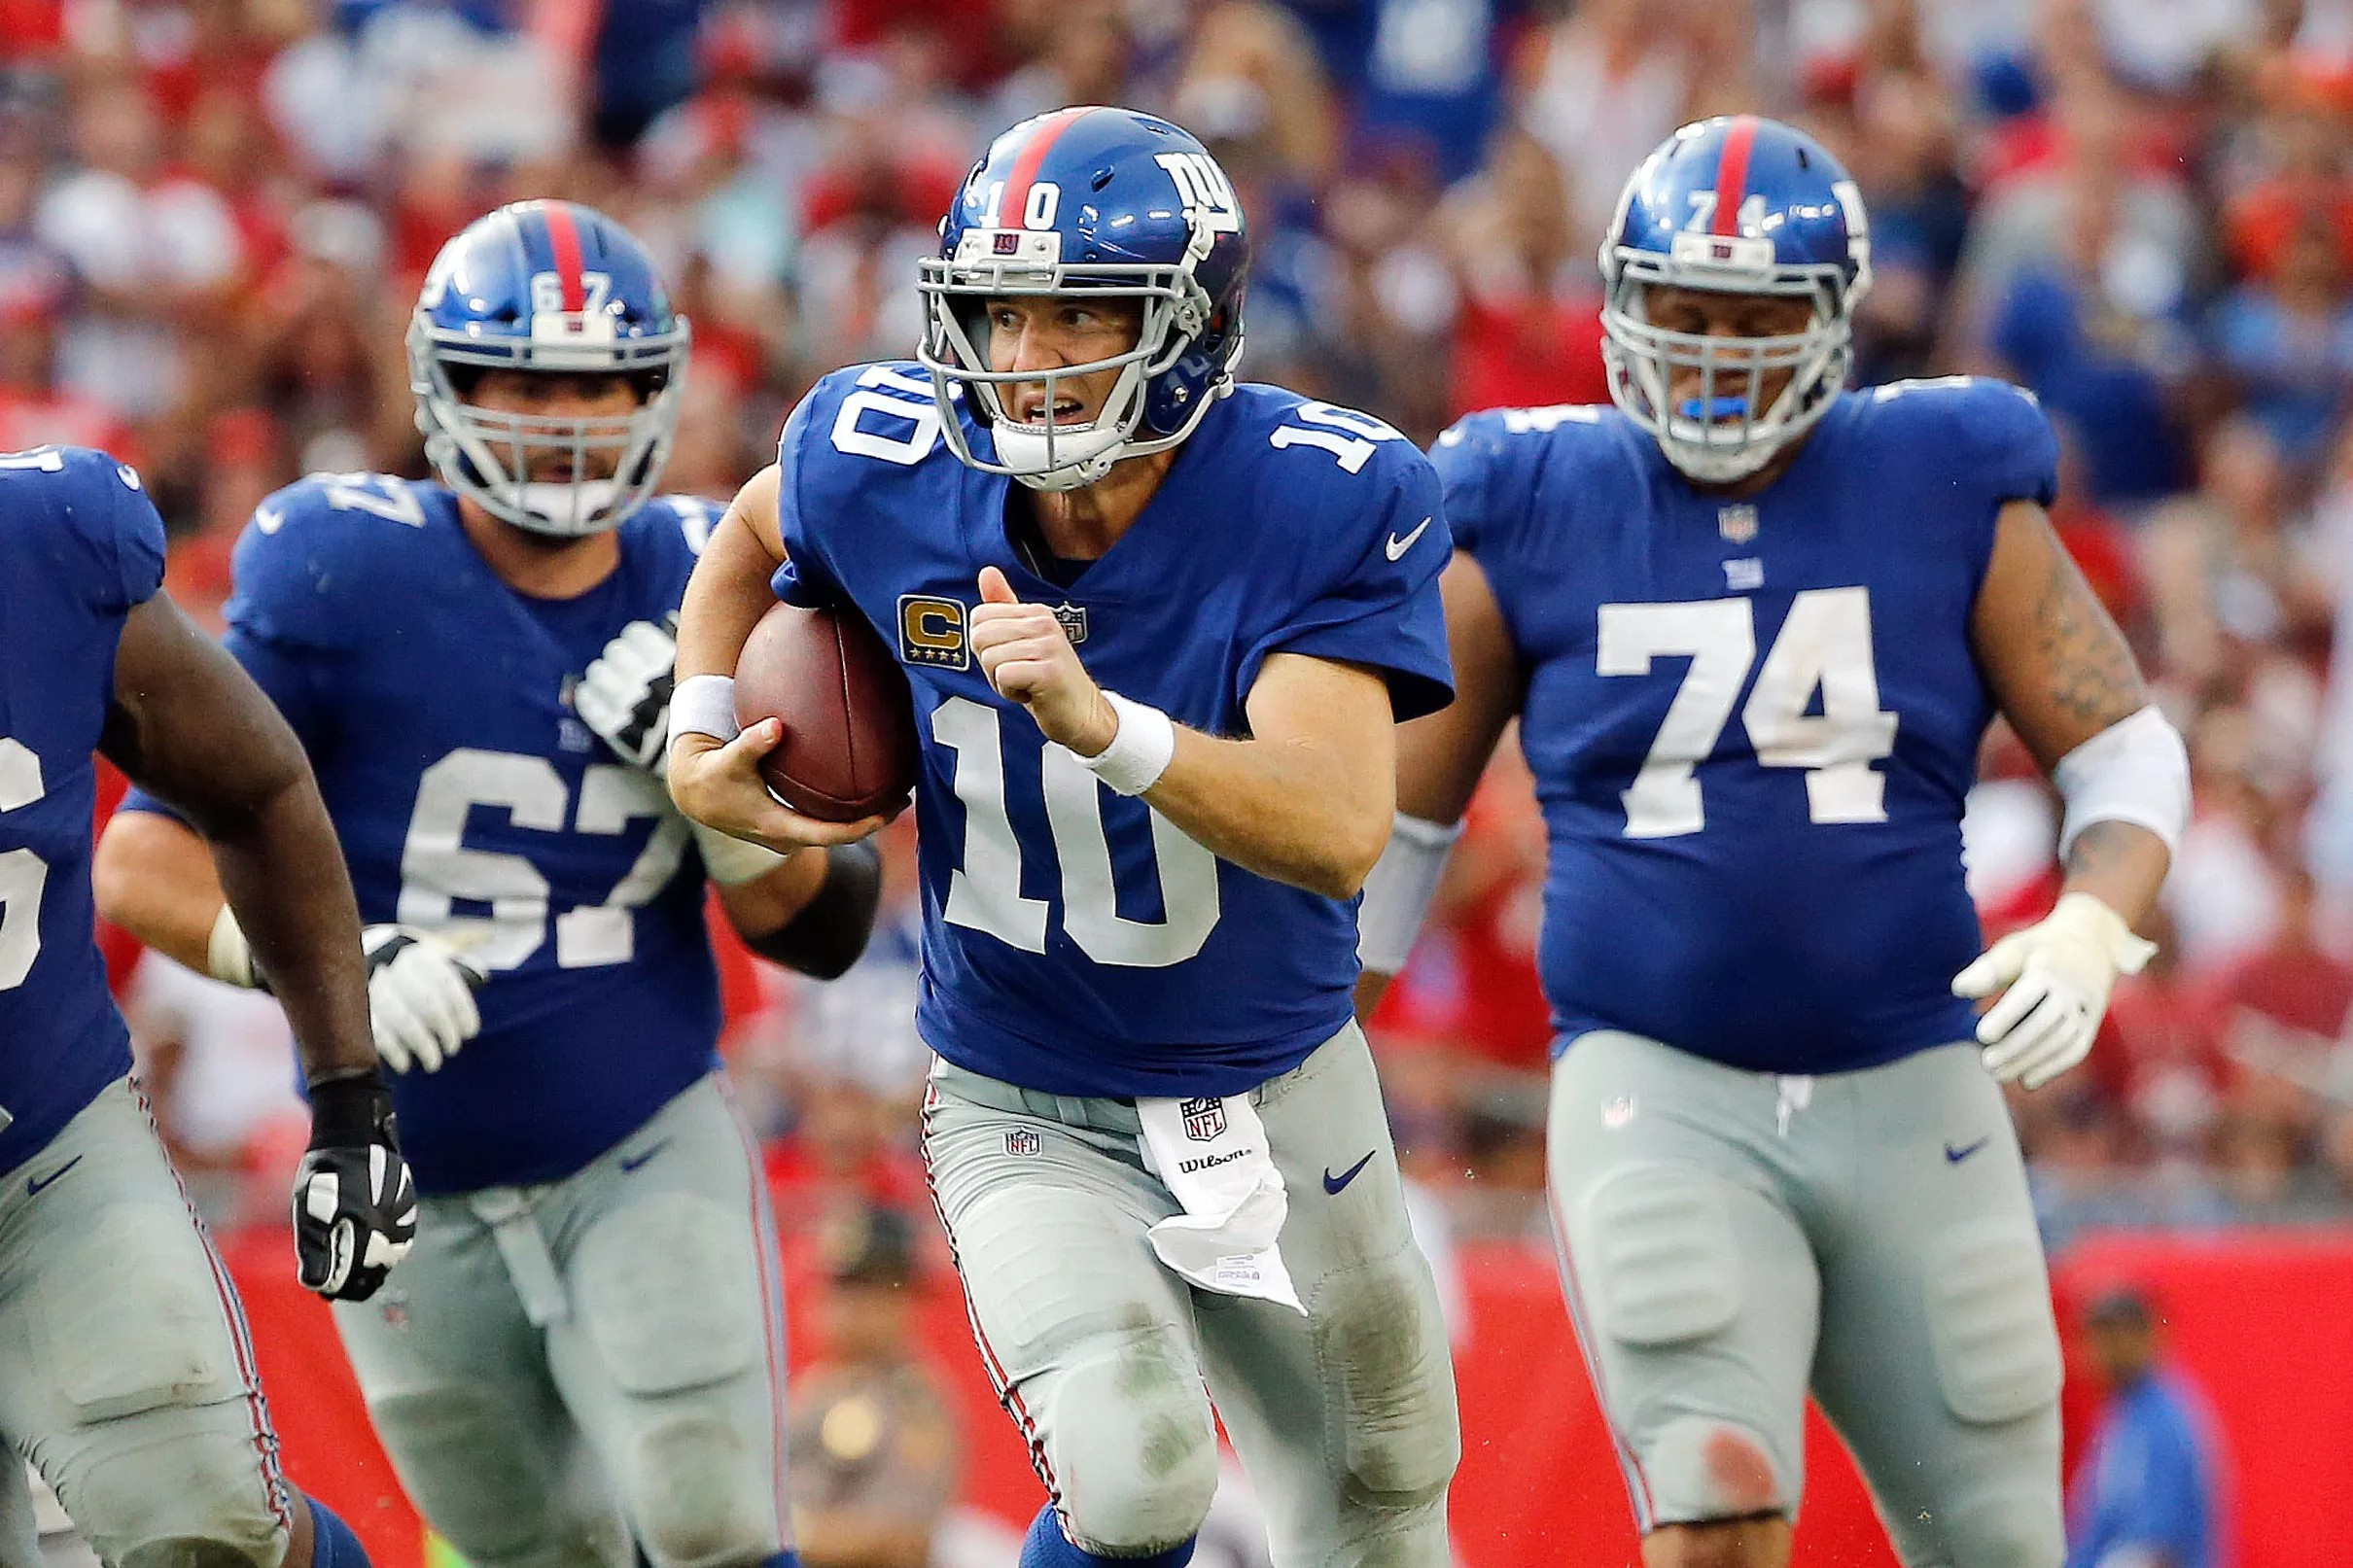 What To Look For From The Giants Offense Against The Chargers